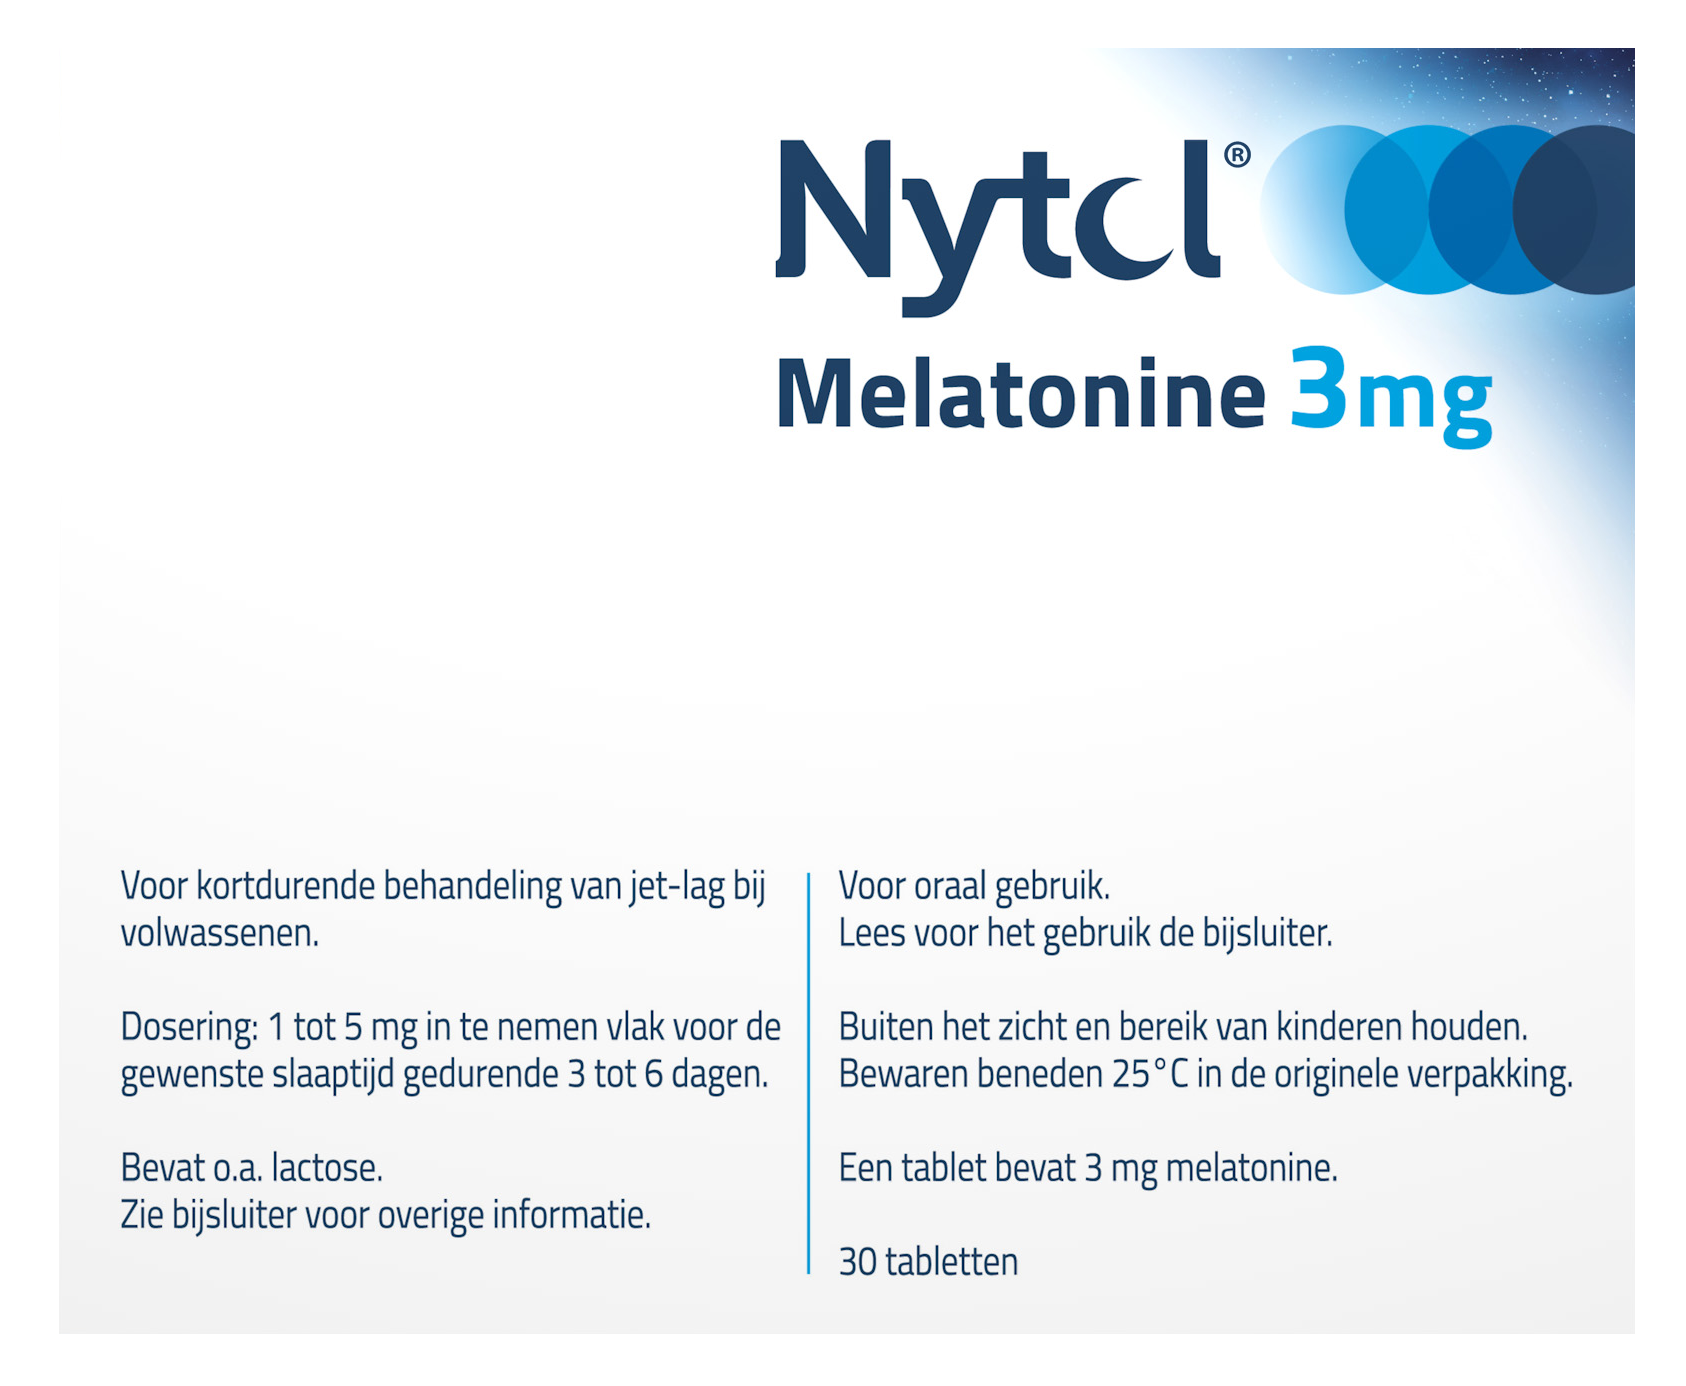 Nytol Melatonine 3mg